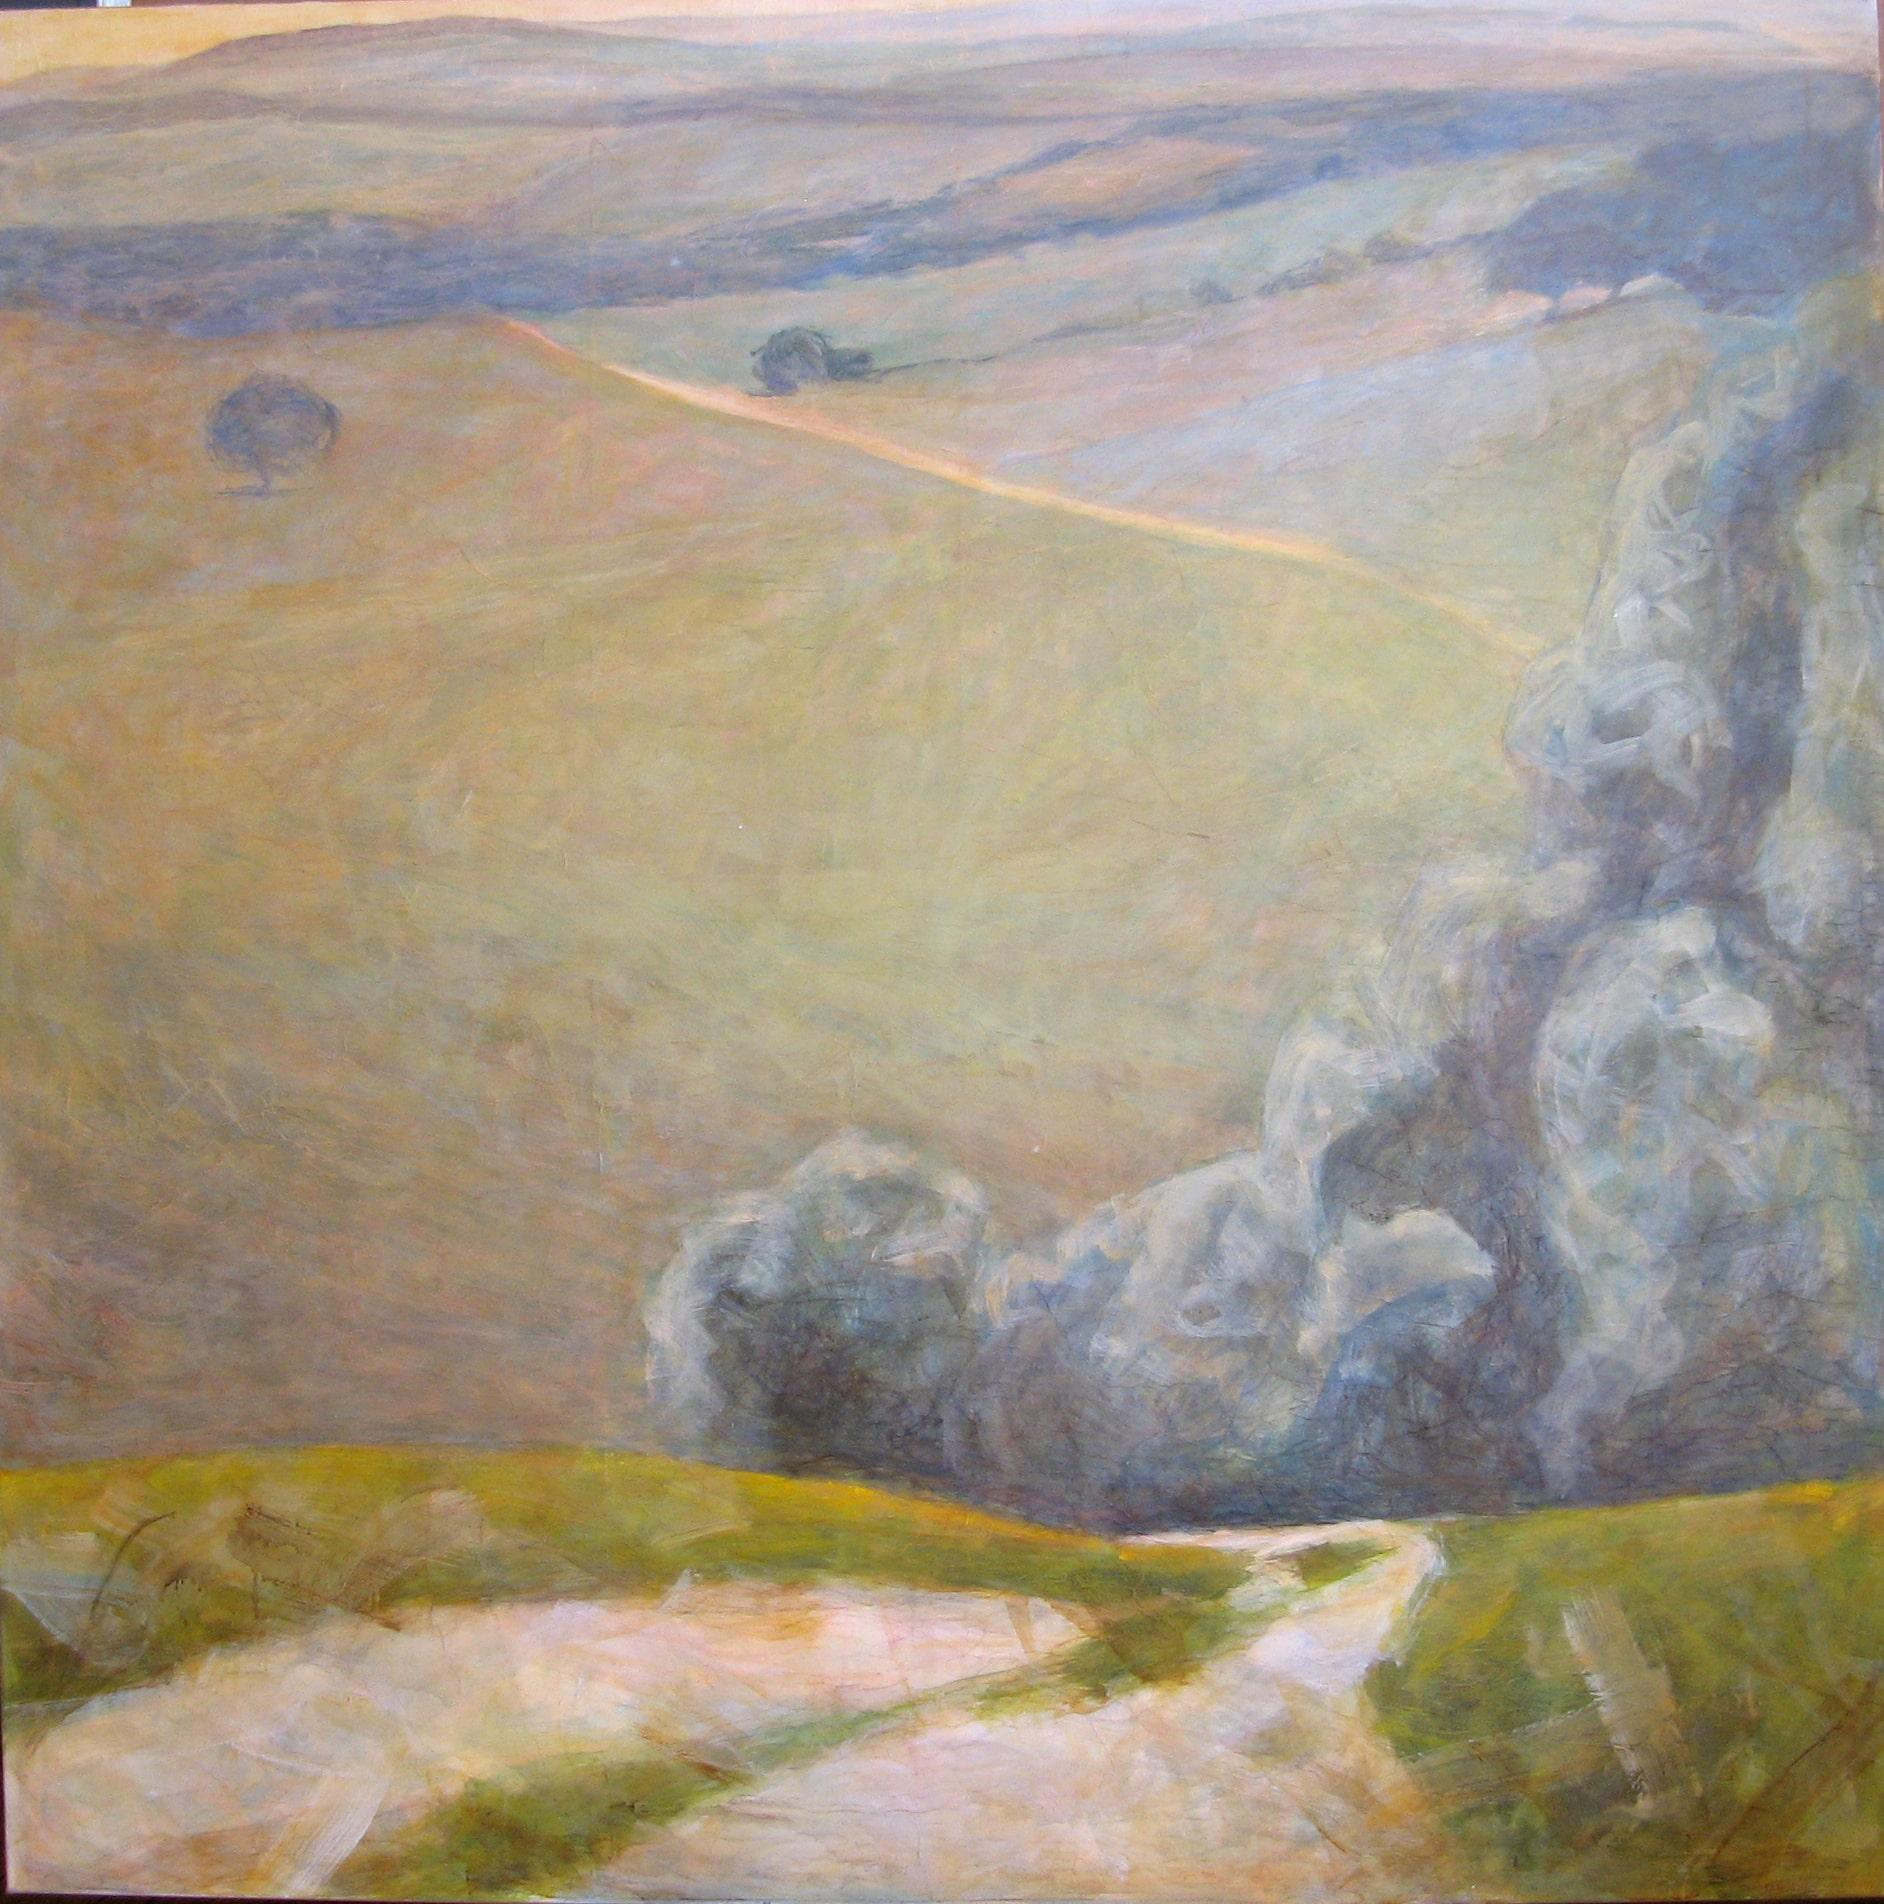 The Road, contemporary landscape painting